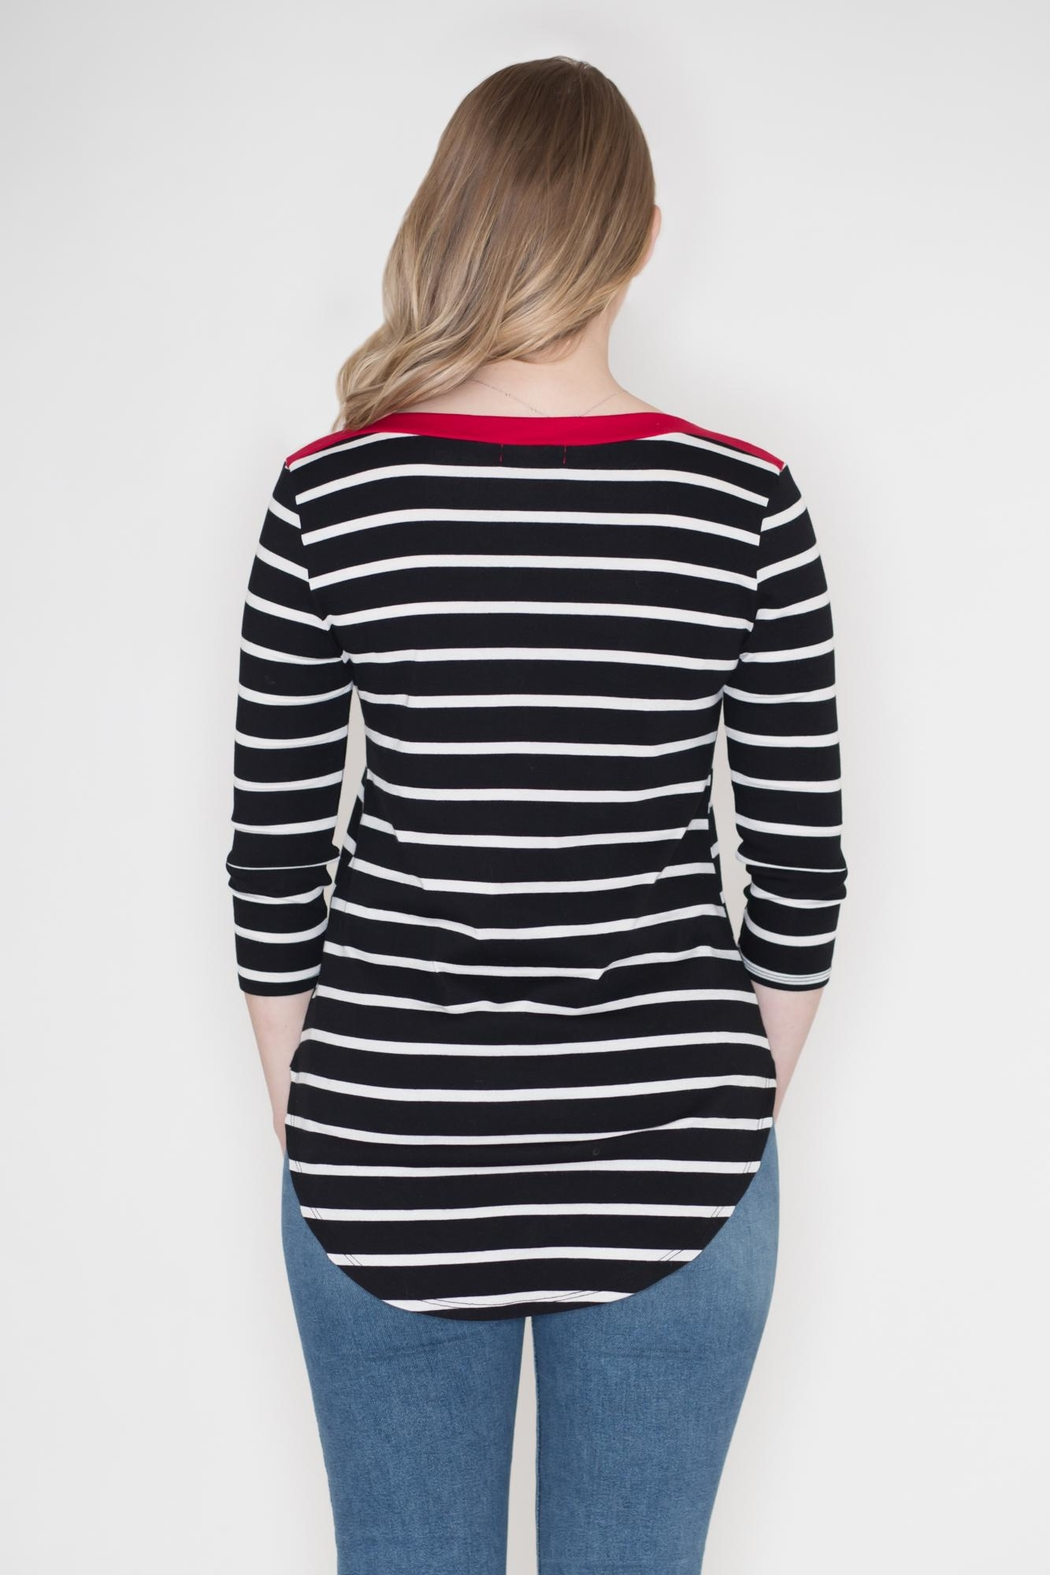 Cherish Contrast Stripe Top - Side Cropped Image